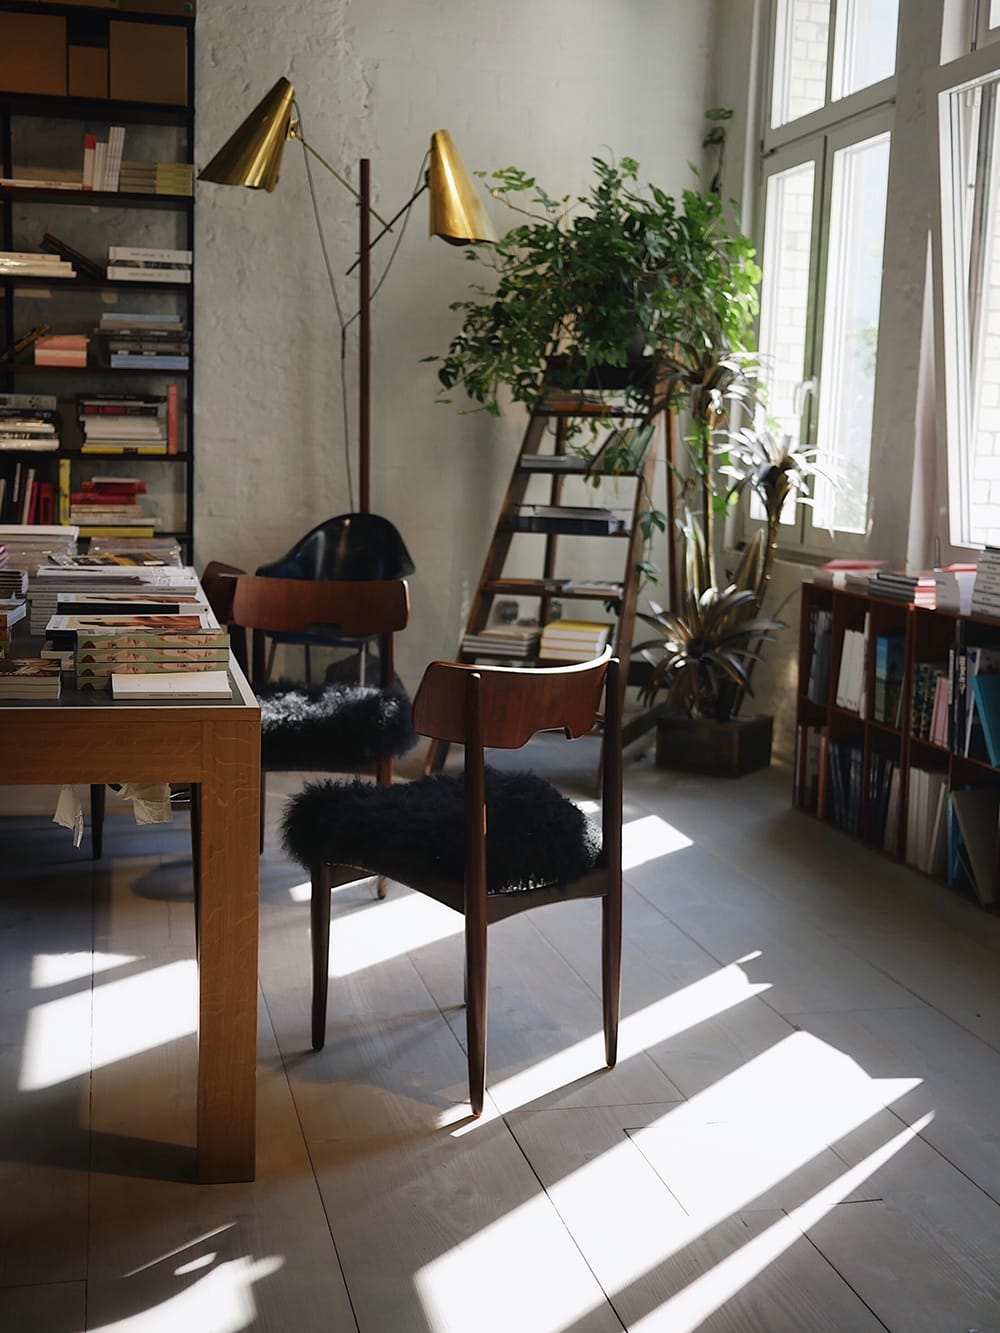 An interior of a design store with a vintage chair placed in the middle. Berlin